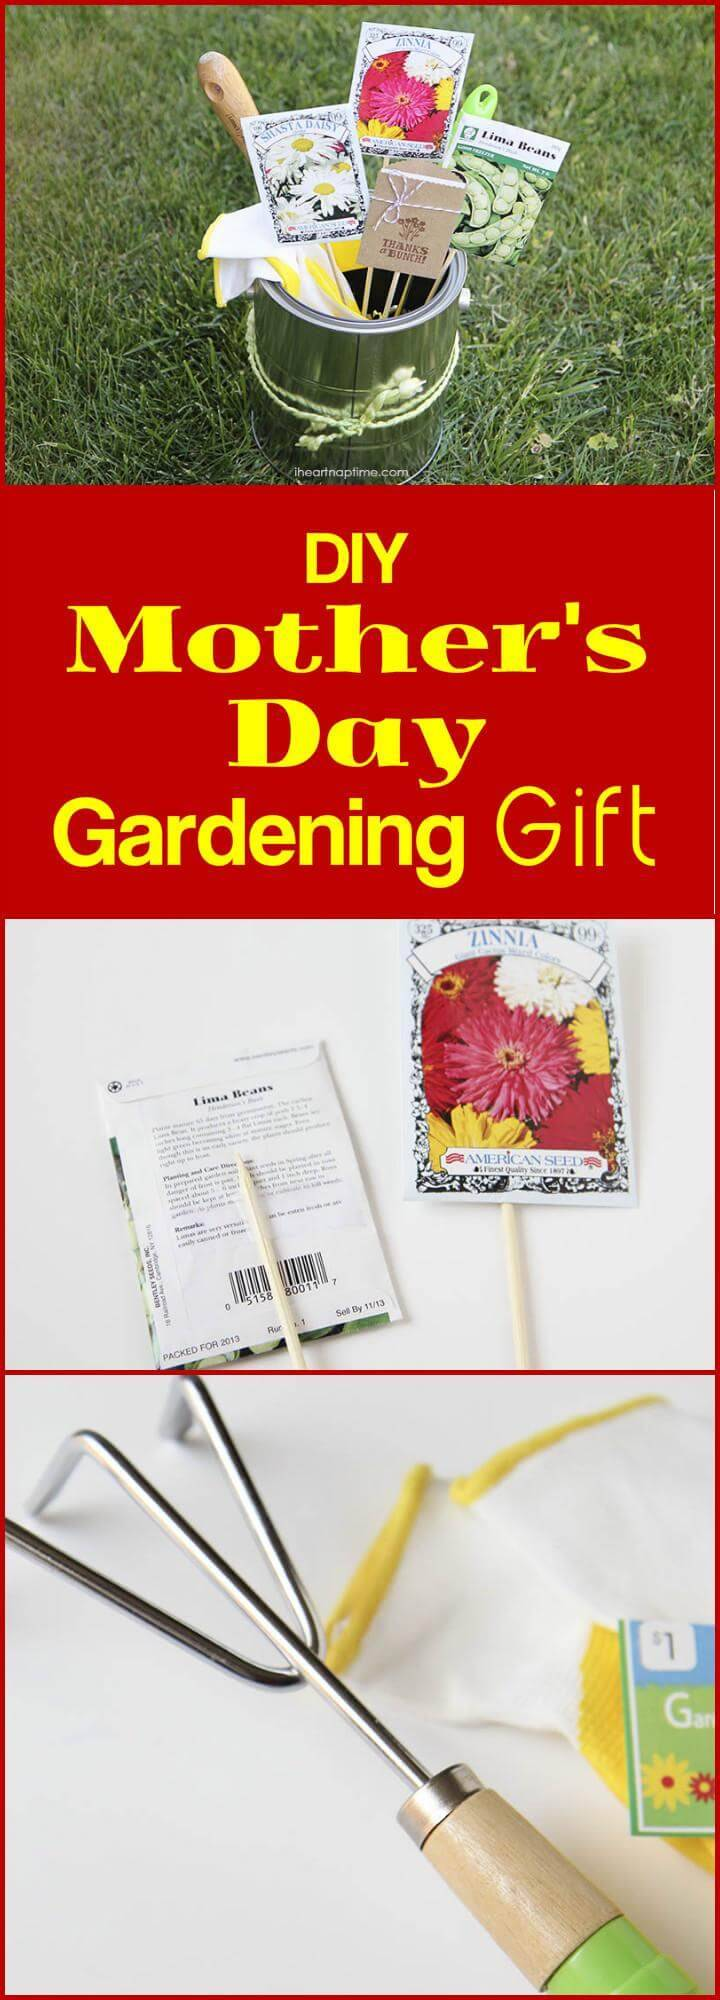 DIY Mother's Day Gardening Gift